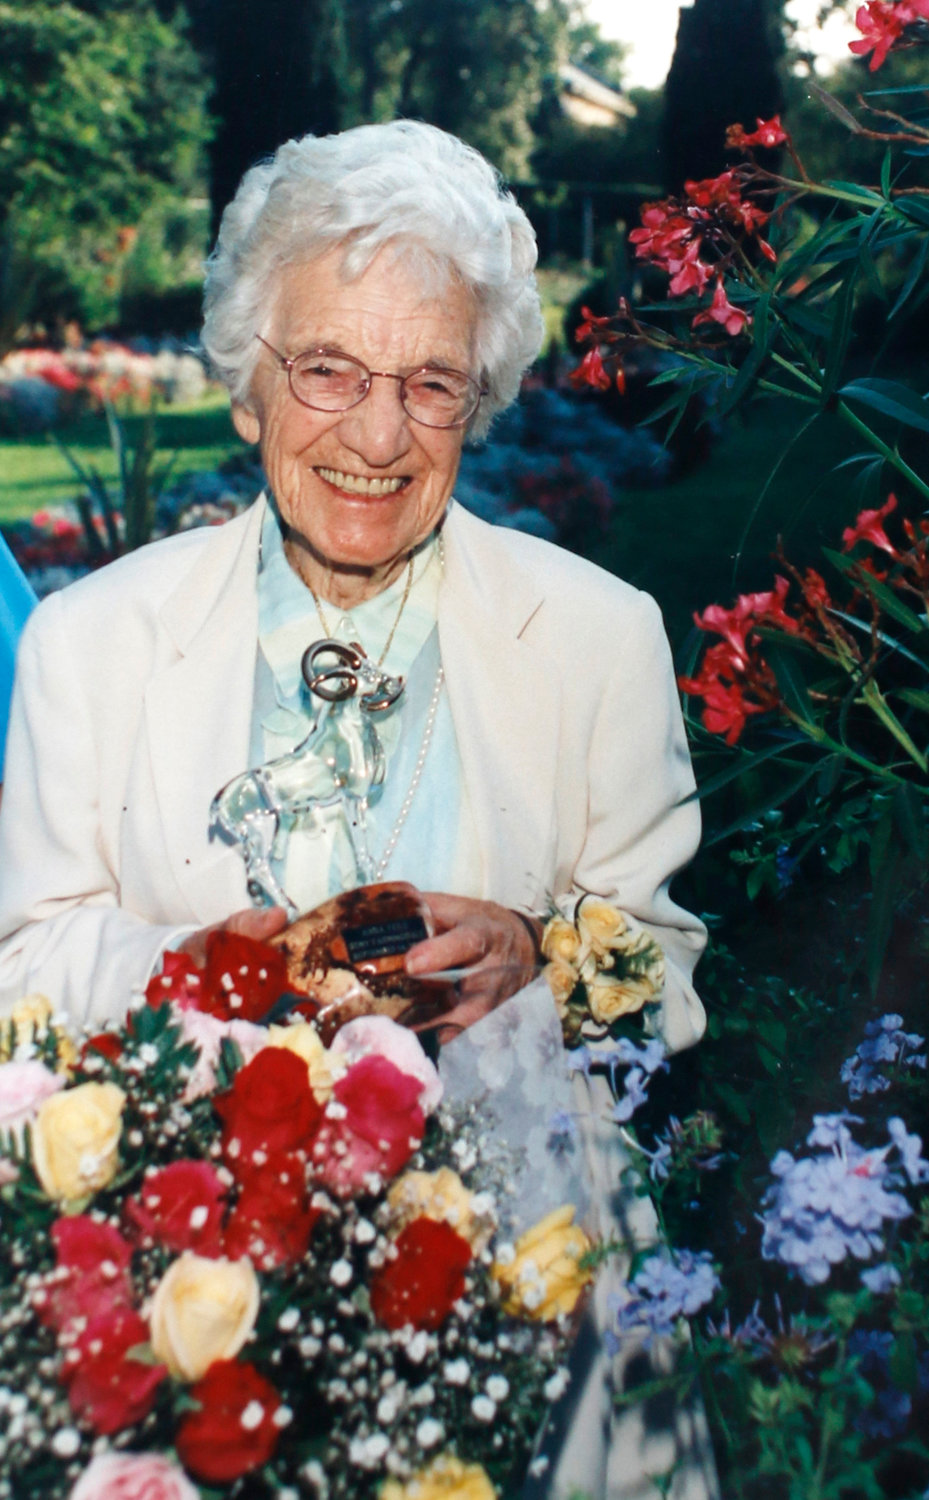 Anna Feile, who took over the nursery in 1957 and the first woman to be nurseryman of the Year in 1968.